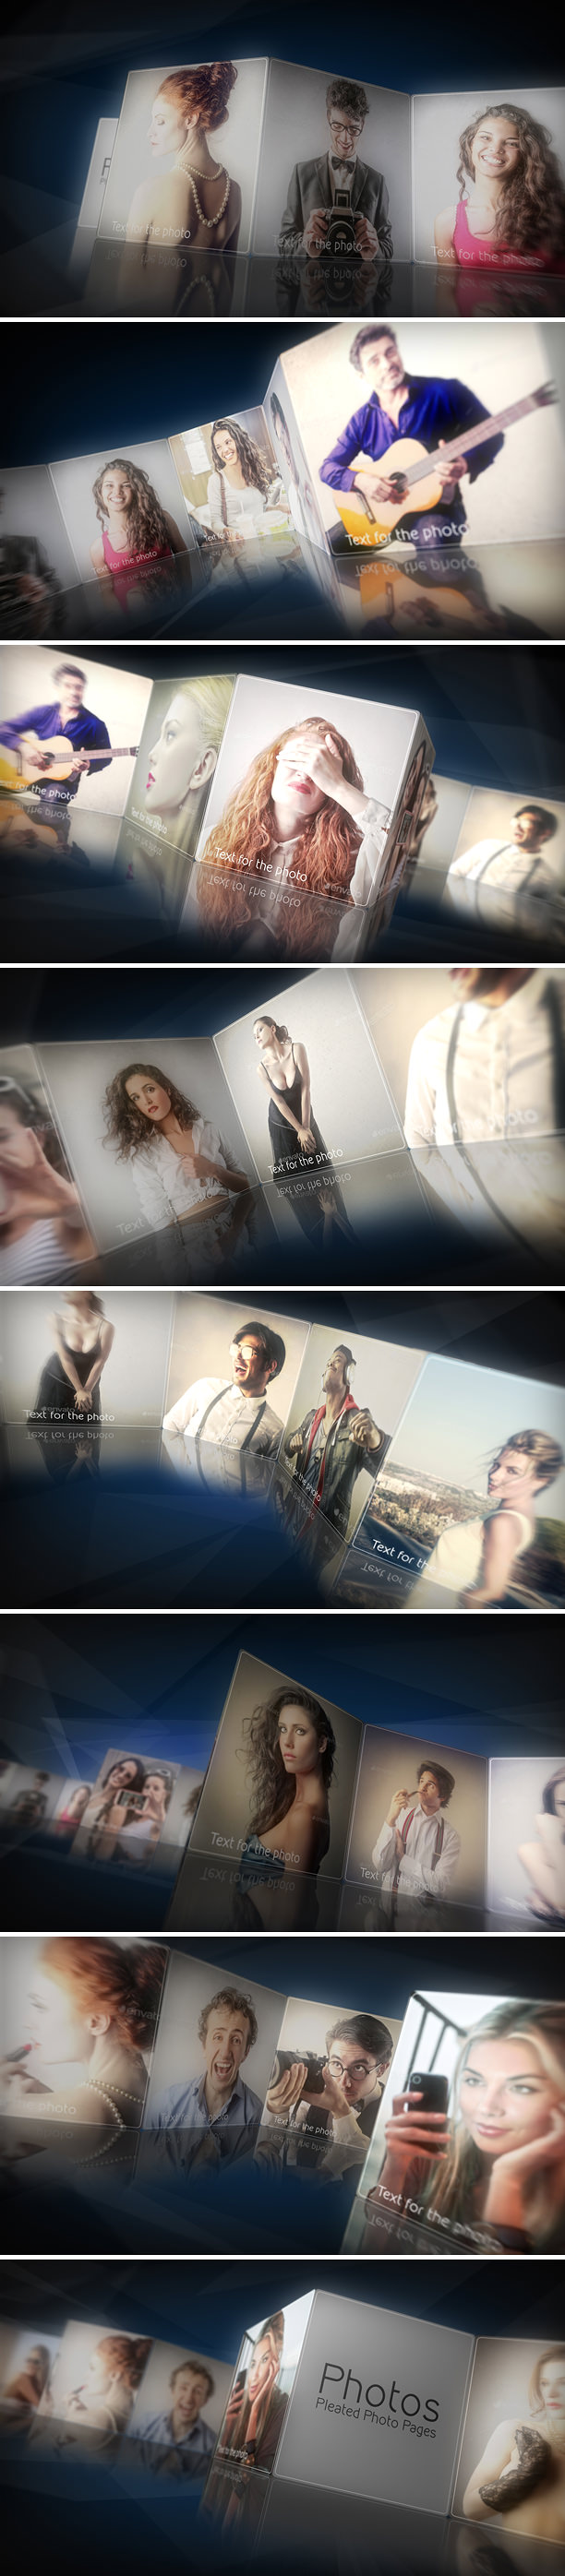 Elegant Slideshow Photo or Video Gallery After Effects Template